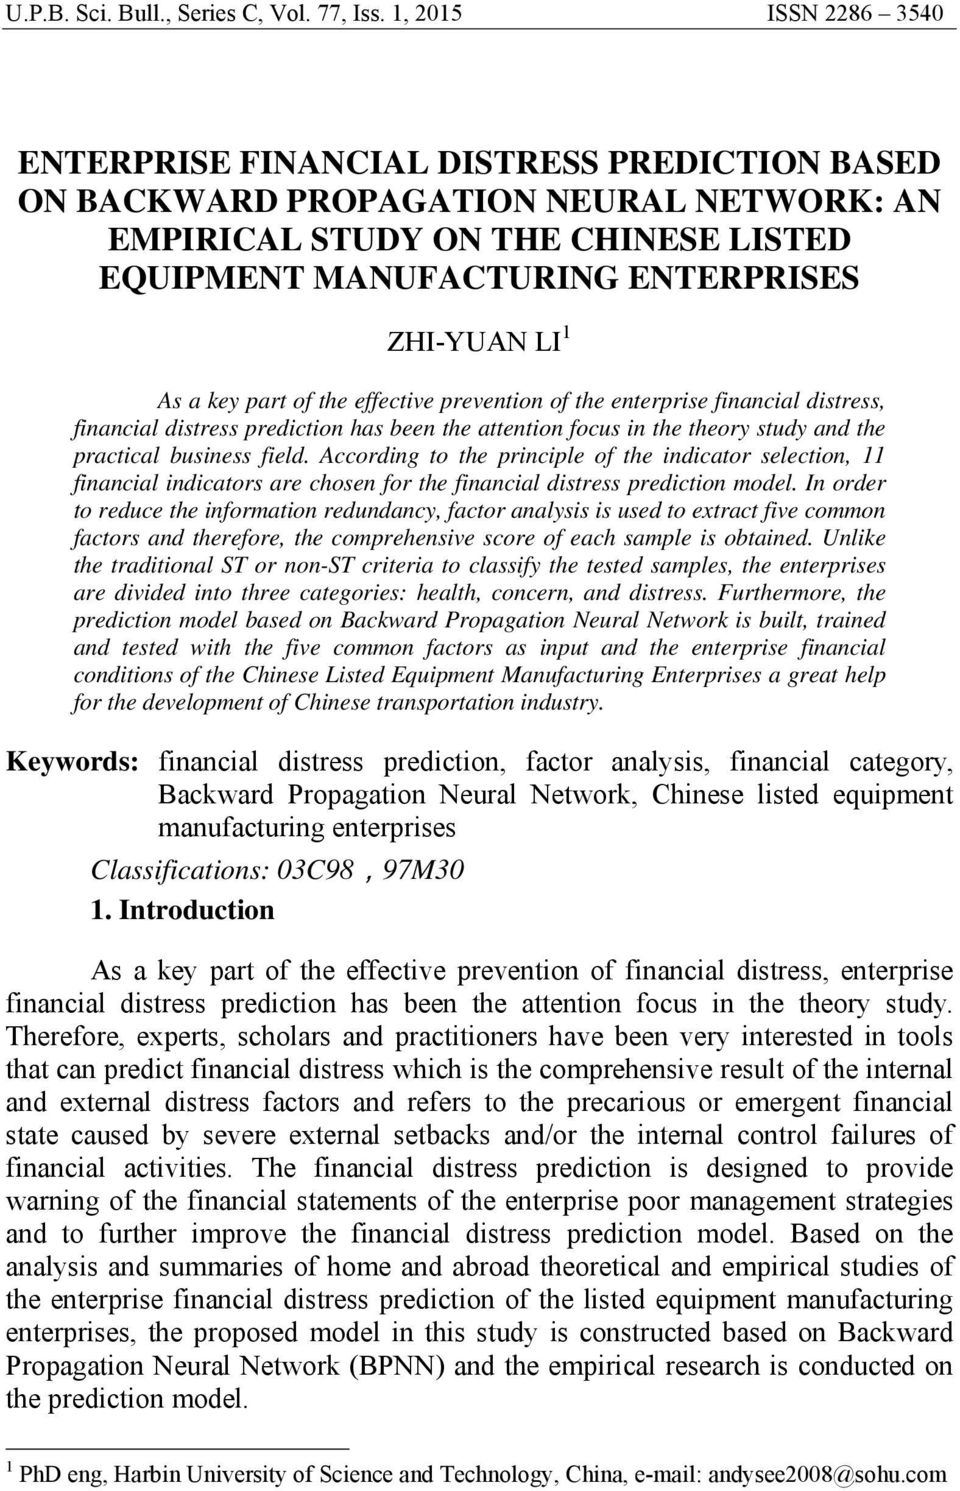 1 As a key part of the effective prevention of the enterprise financial distress, financial distress prediction has been the attention focus in the theory study and the practical business field.